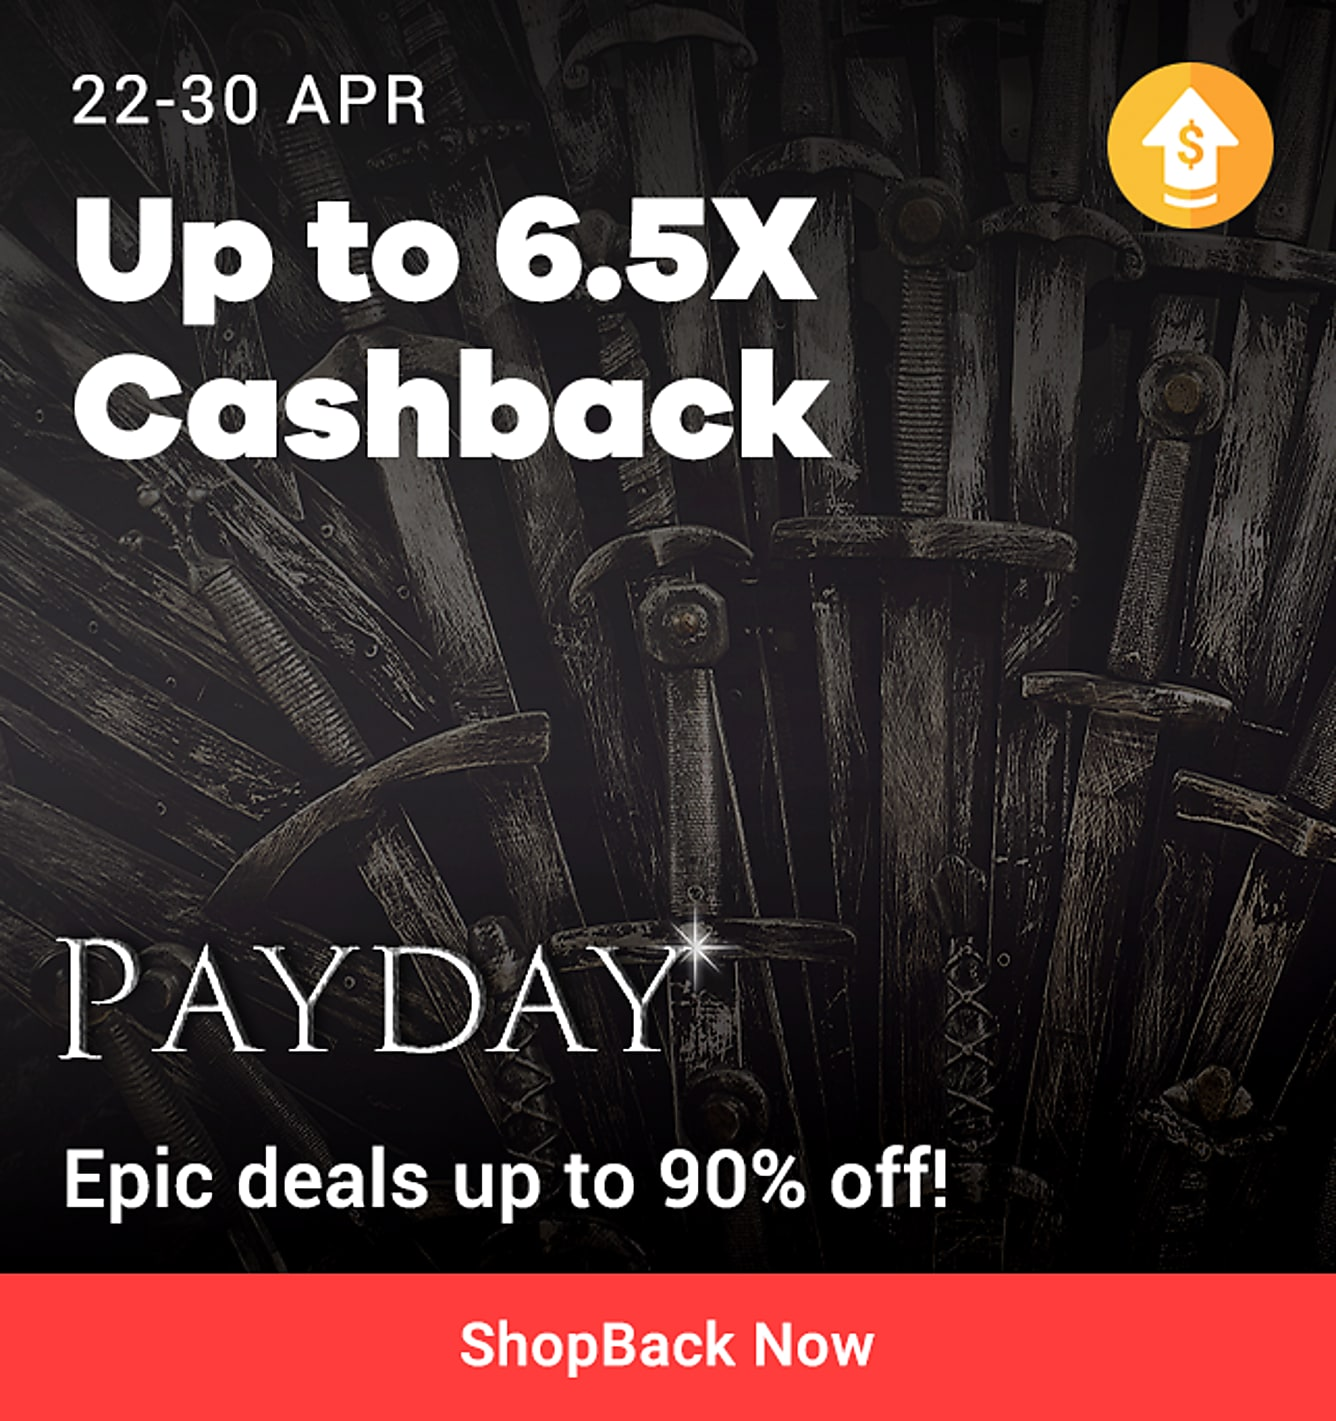 Payday sales 22-30 Apr